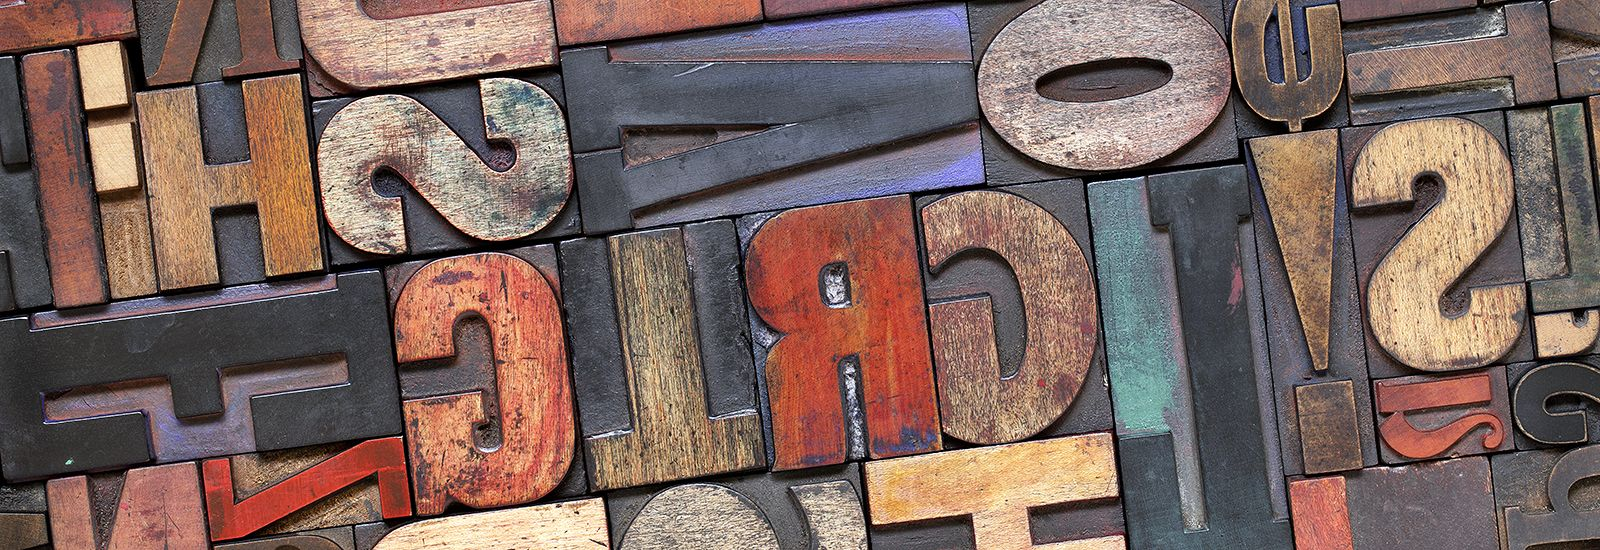 A close up of wooden printing blocks